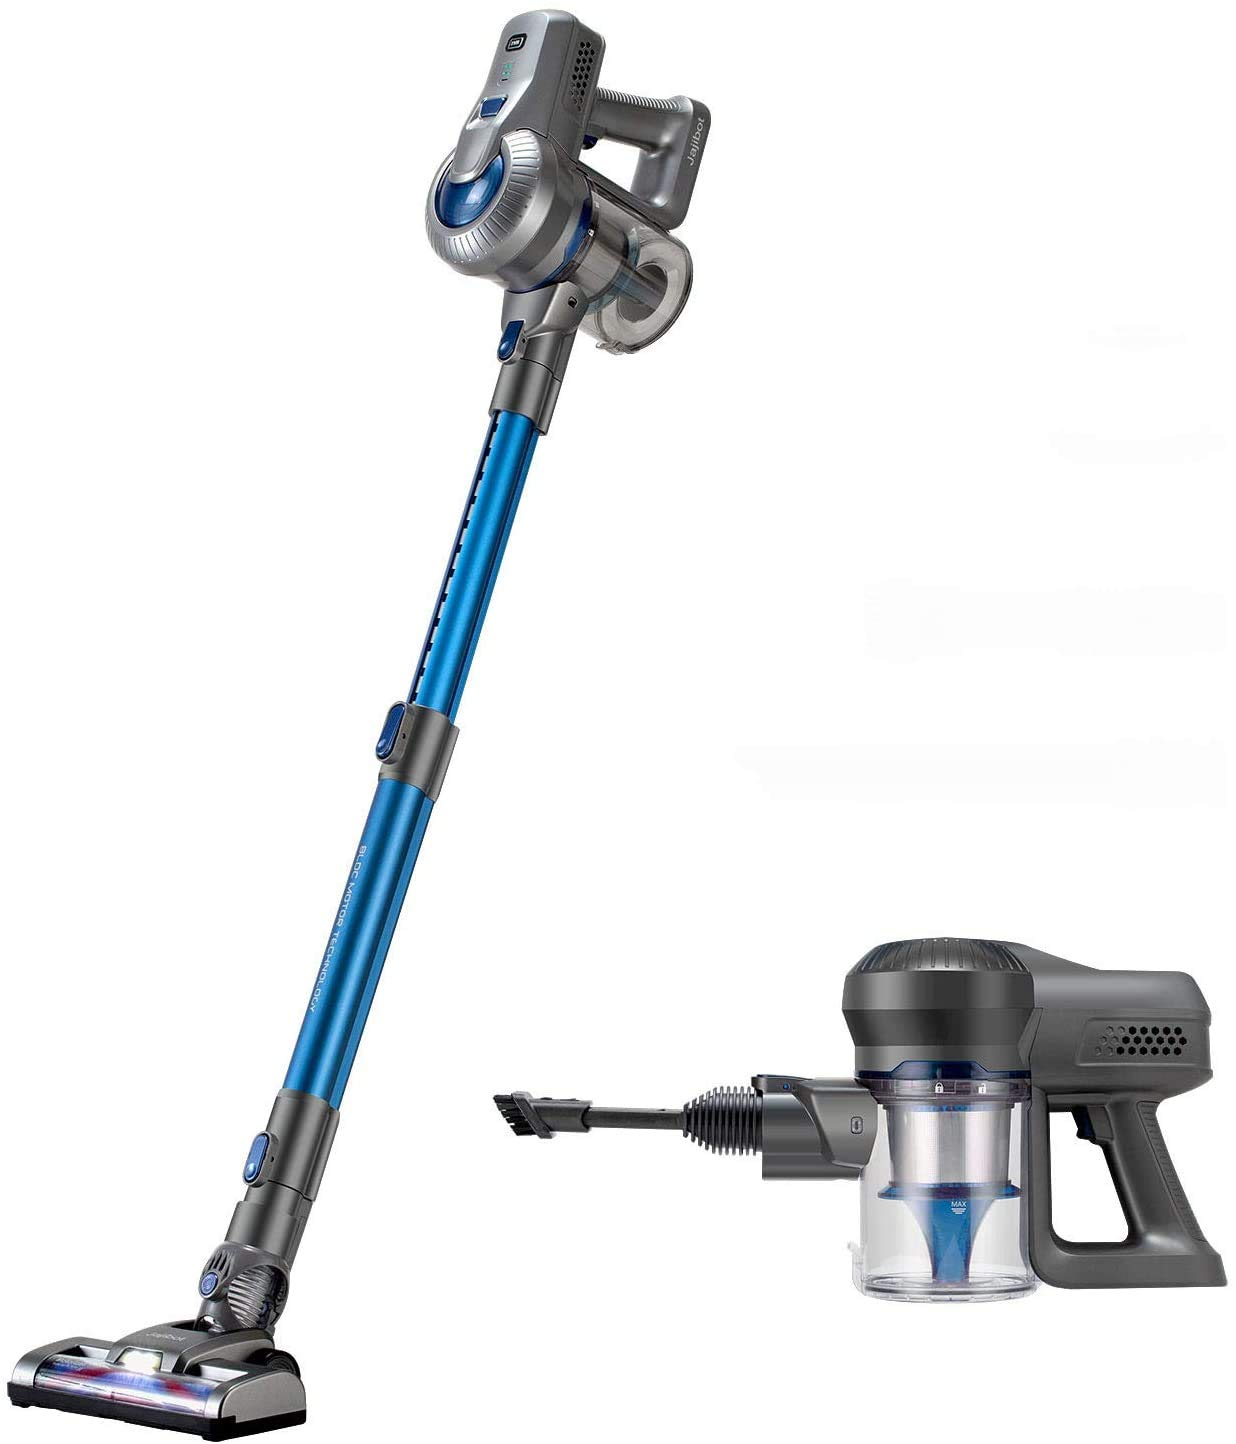 Jajibot Cordless Vacuum, 18KPa Max Suction Stick Vacuum Cleaner, 2-in1 Lightweight Handheld Vacuum with Telescopic Tube, Rechargeable Lithium Battery and LED Headlights Brush, Blue/Gray